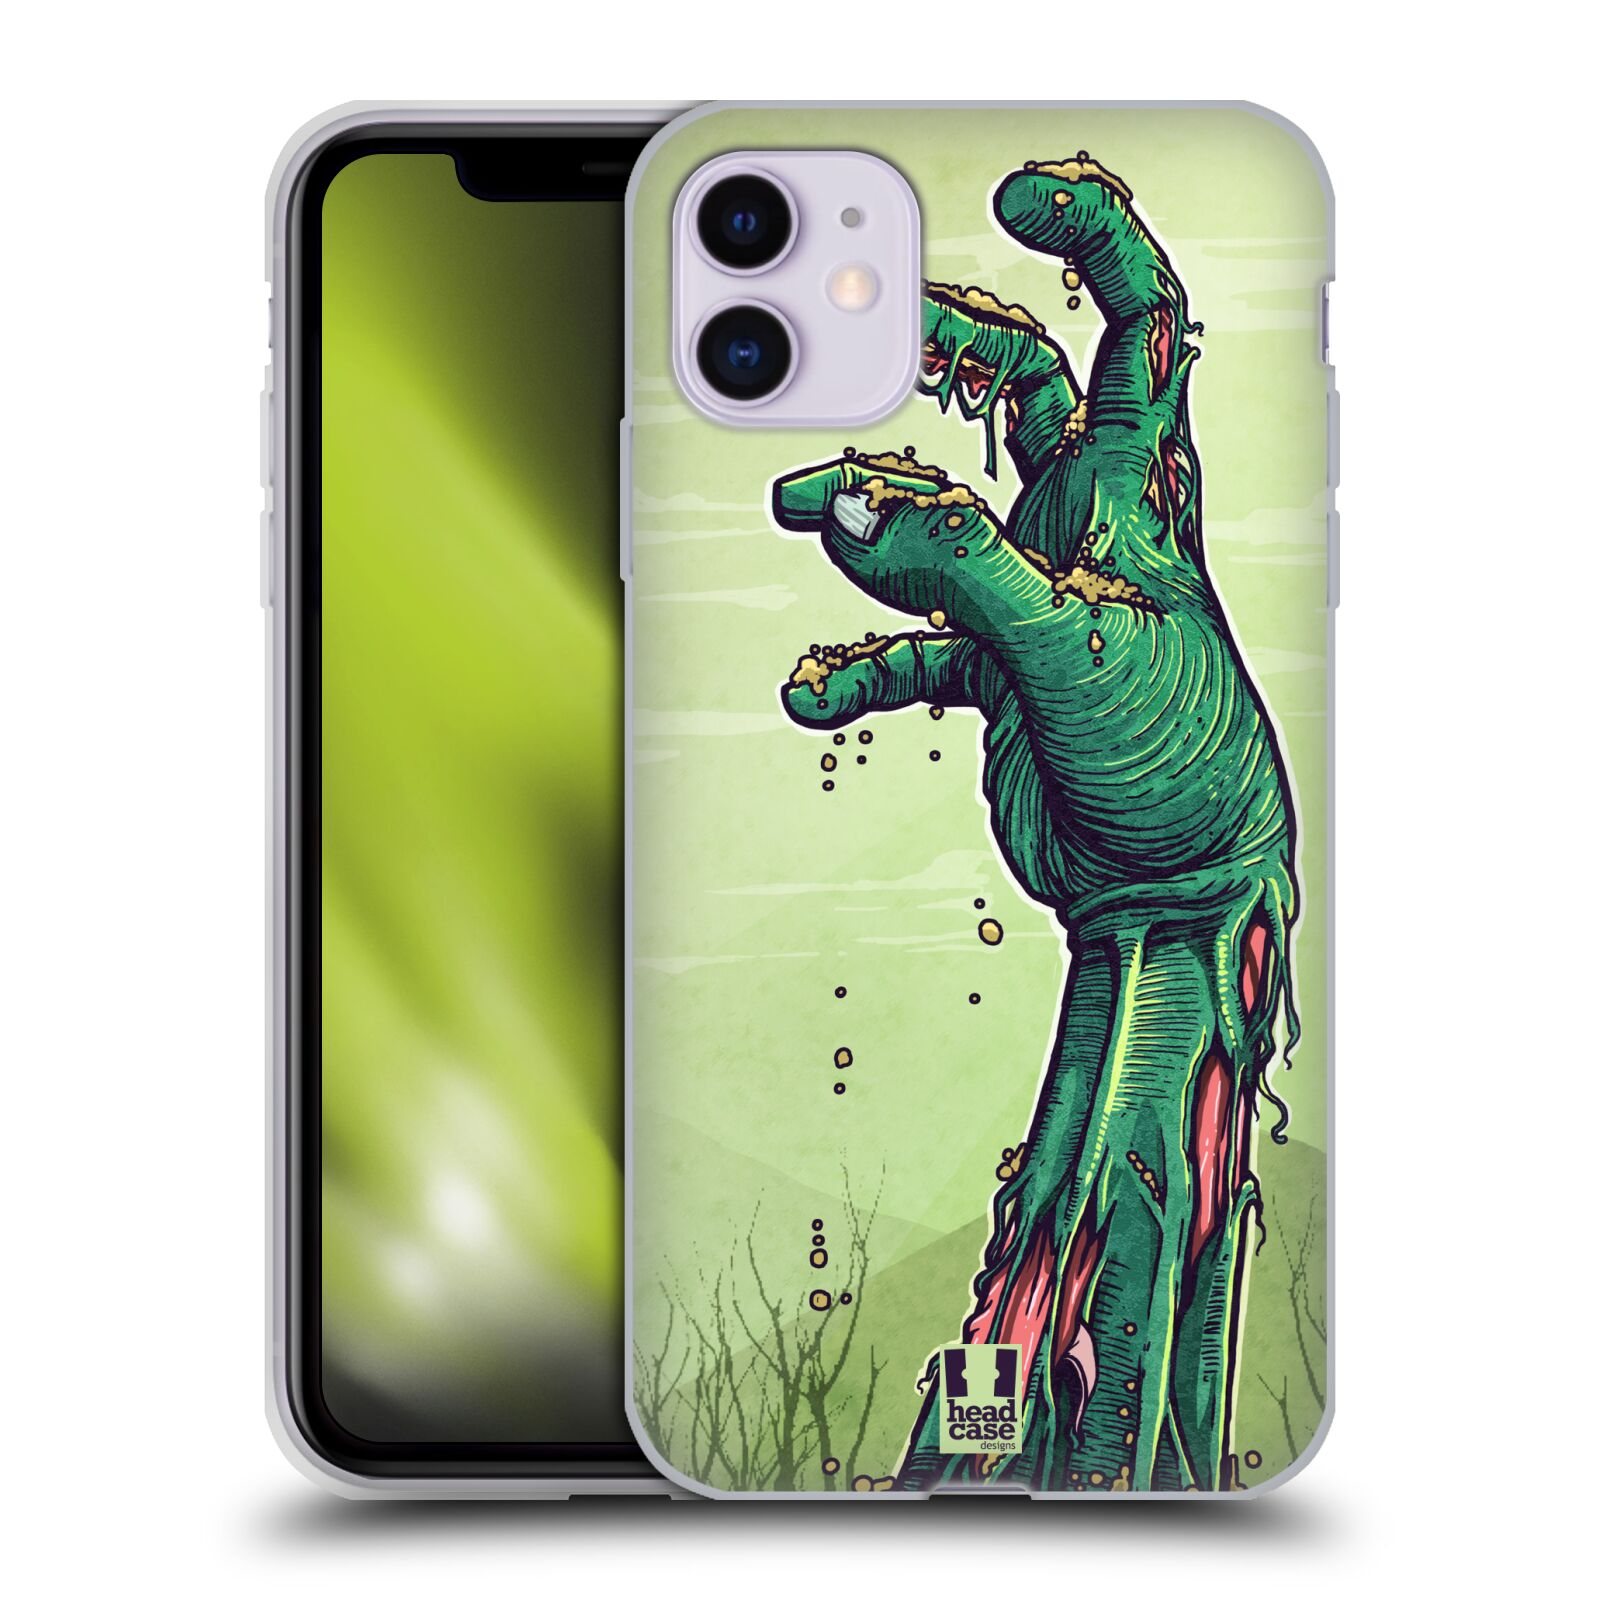 vodotesny obal iphone , Silikonové pouzdro na mobil Apple iPhone 11 - Head Case - ZOMBIE RUKA